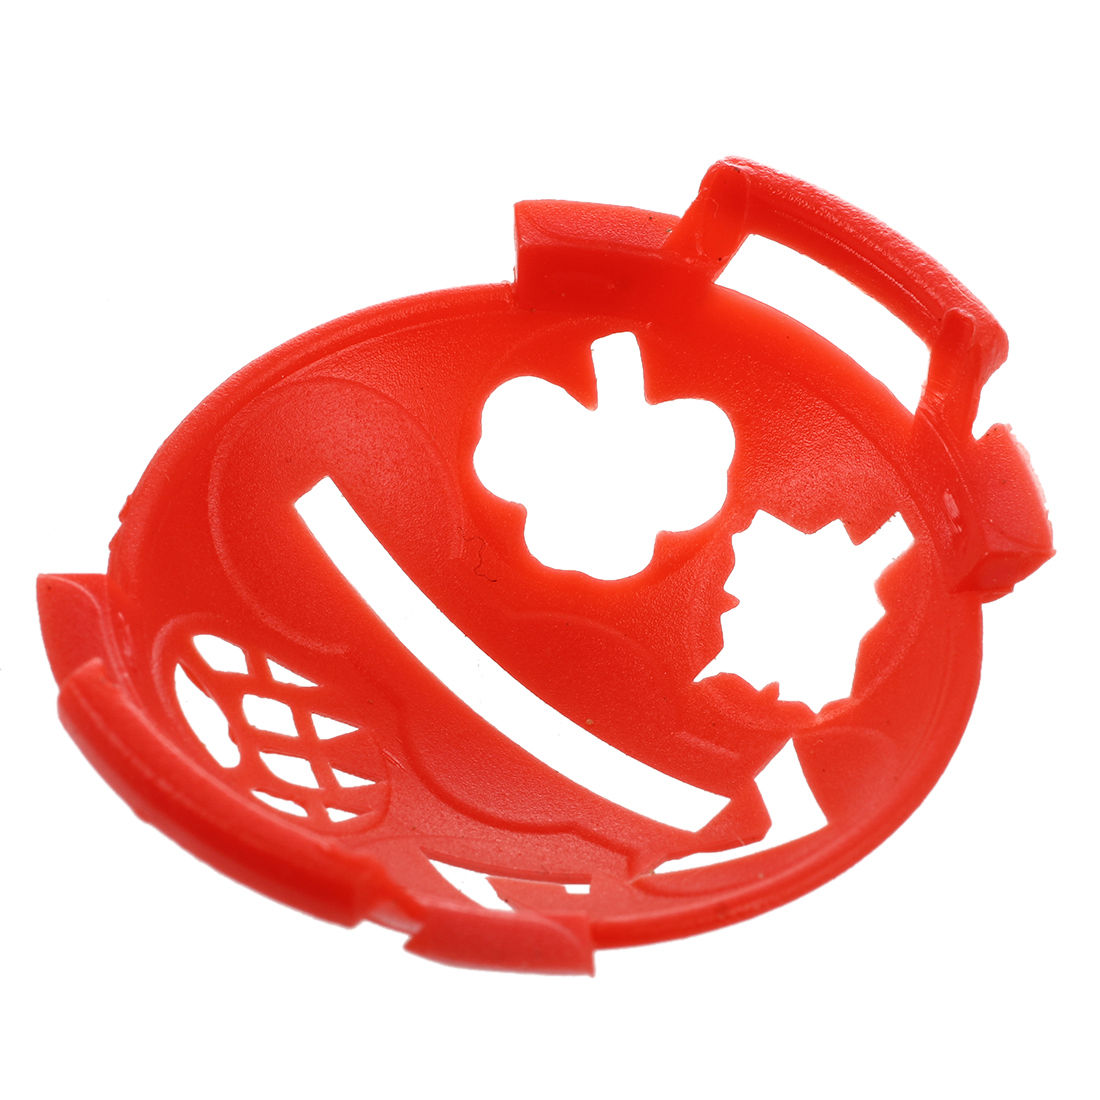 1 X Golf Ball Marker Base With Different Templates Red And Black